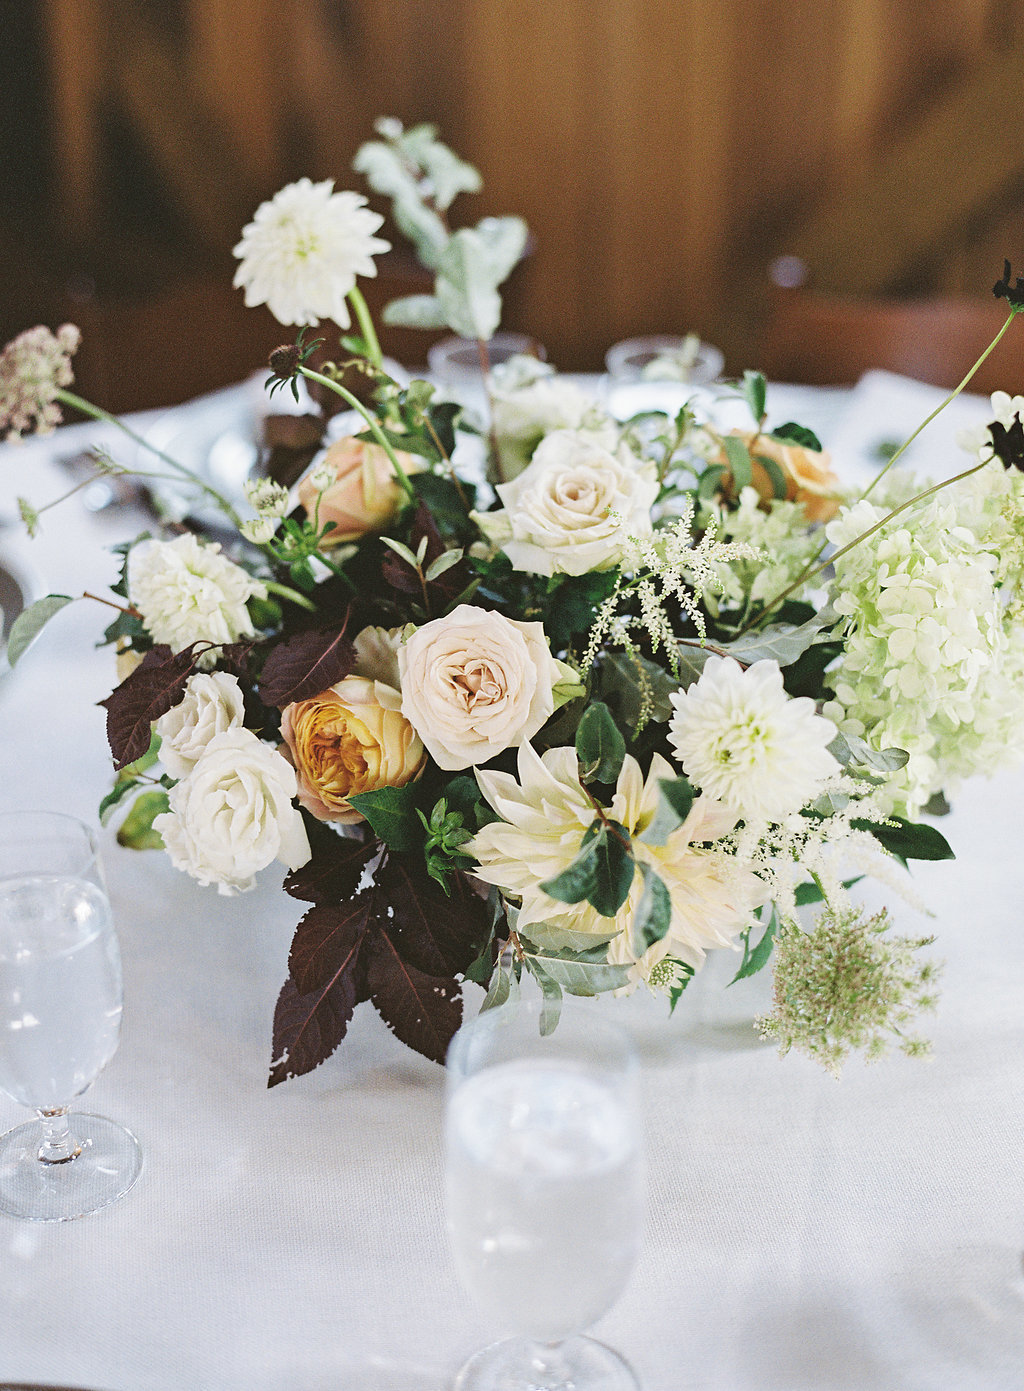 SawyerBaird_CM Table flowers